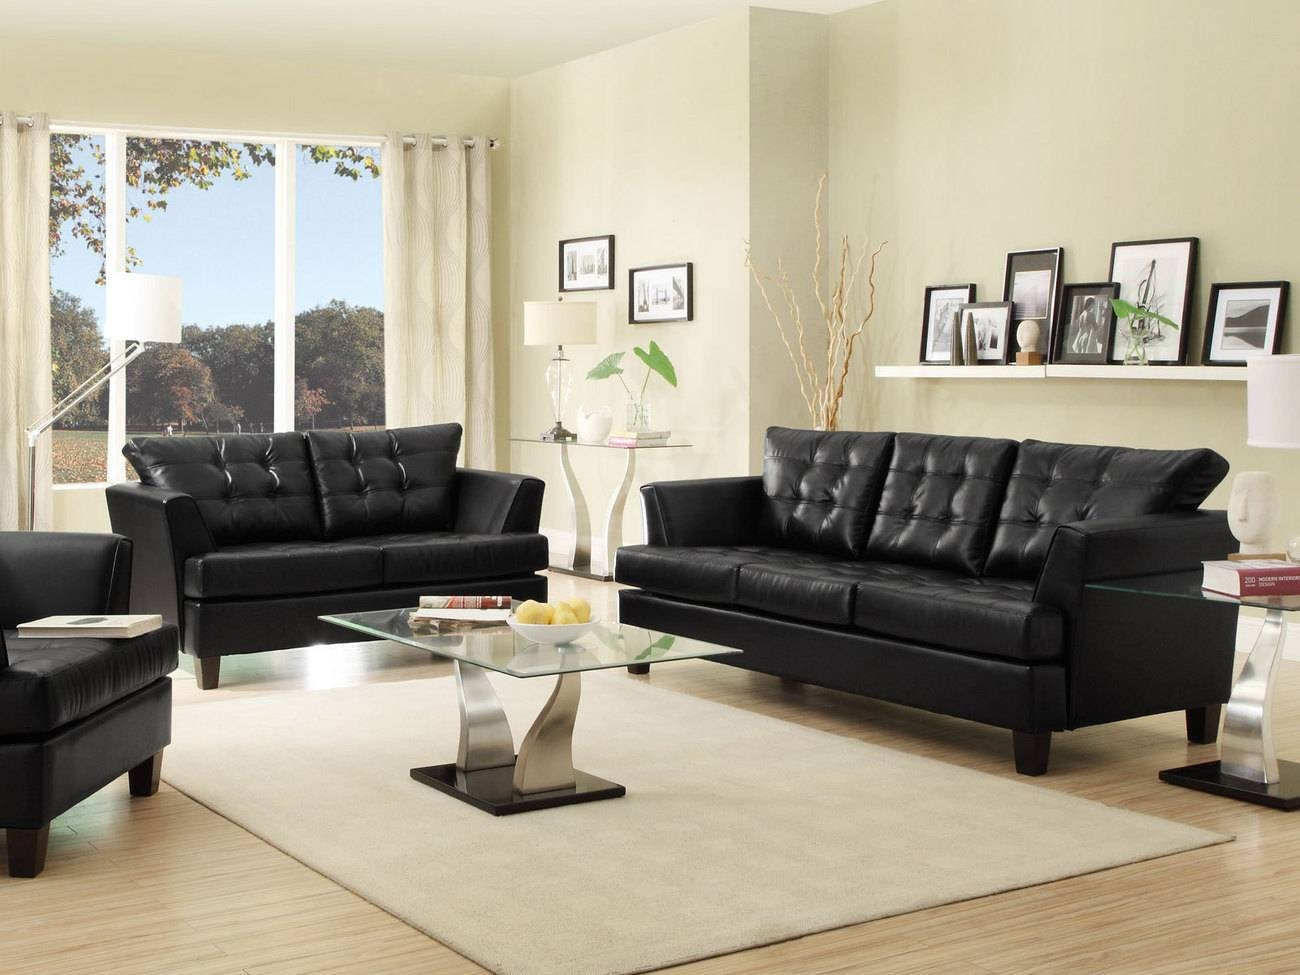 Furniture: Contemporary Couches And Contemporary Sectional Sleeper with regard to West Elm Sectional Sofa (Image 5 of 30)